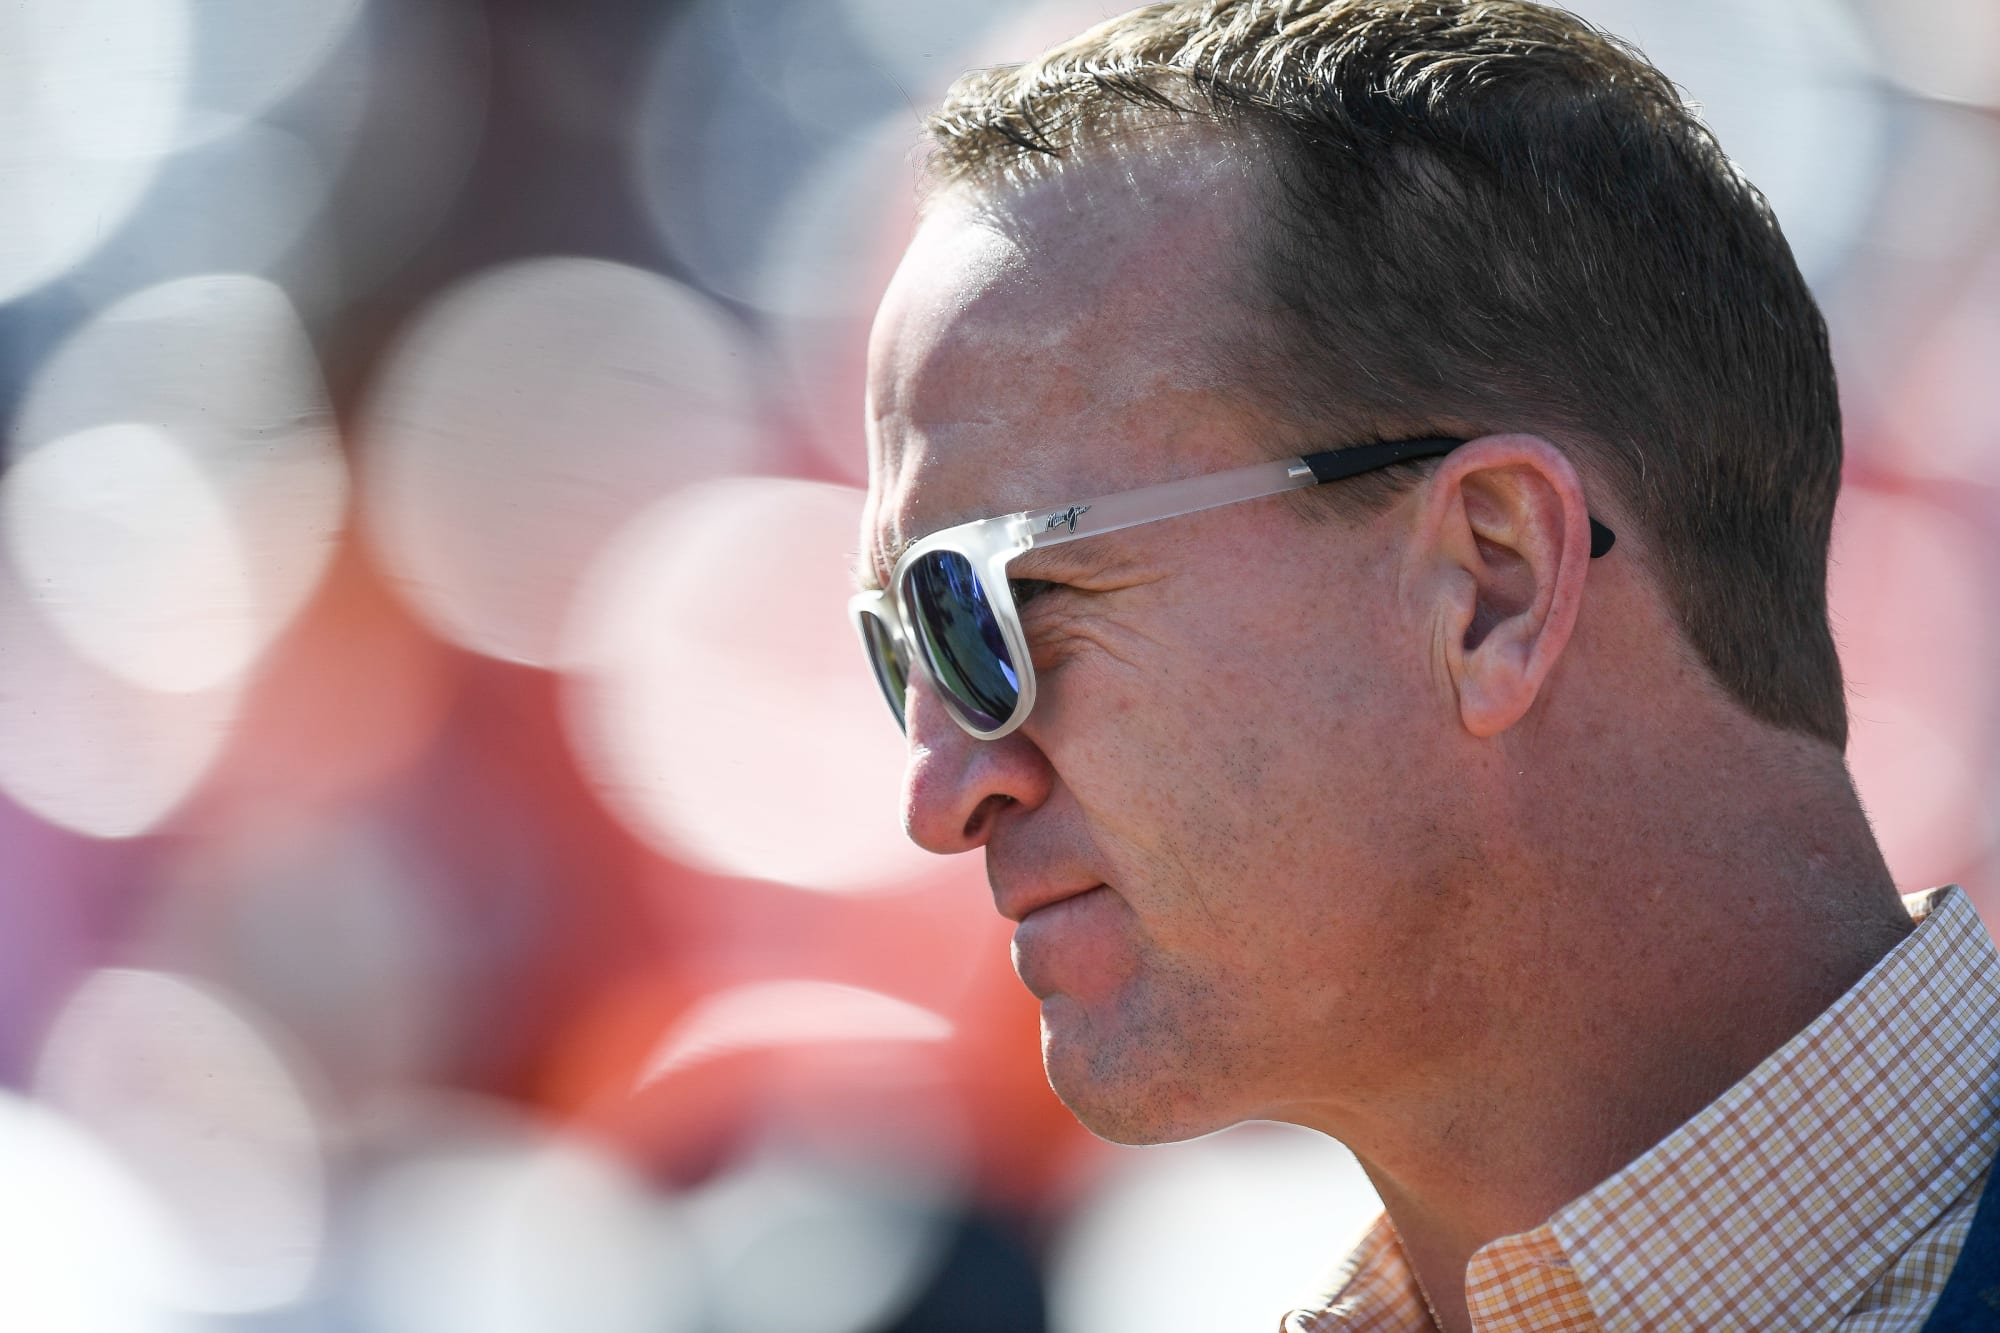 Peyton Manning hints at Patriots cheating in MNF broadcast